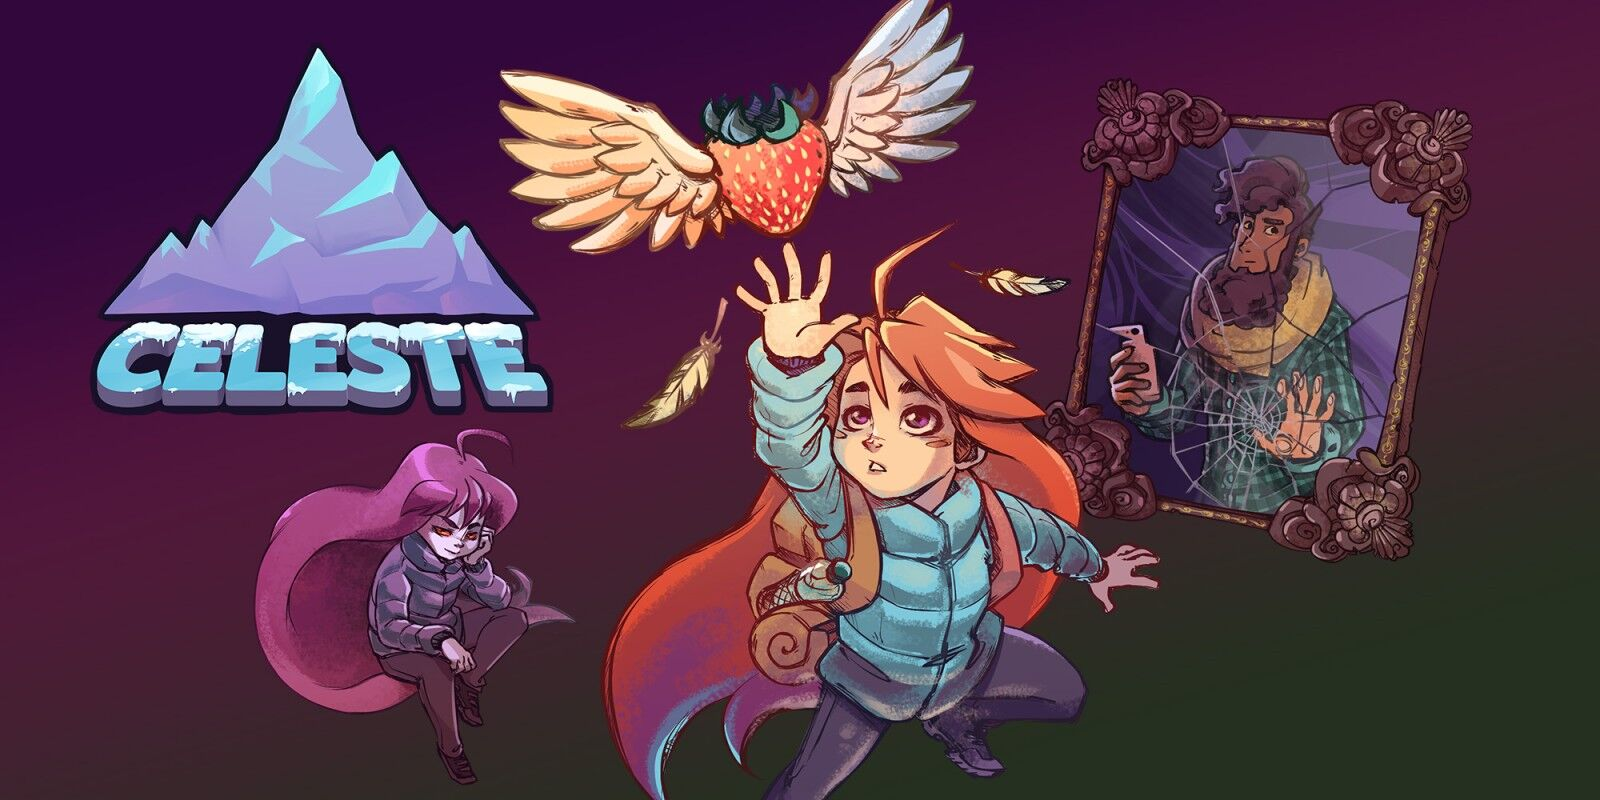 Celeste, Inside both will be free Epic Games Store week of Aug. 29